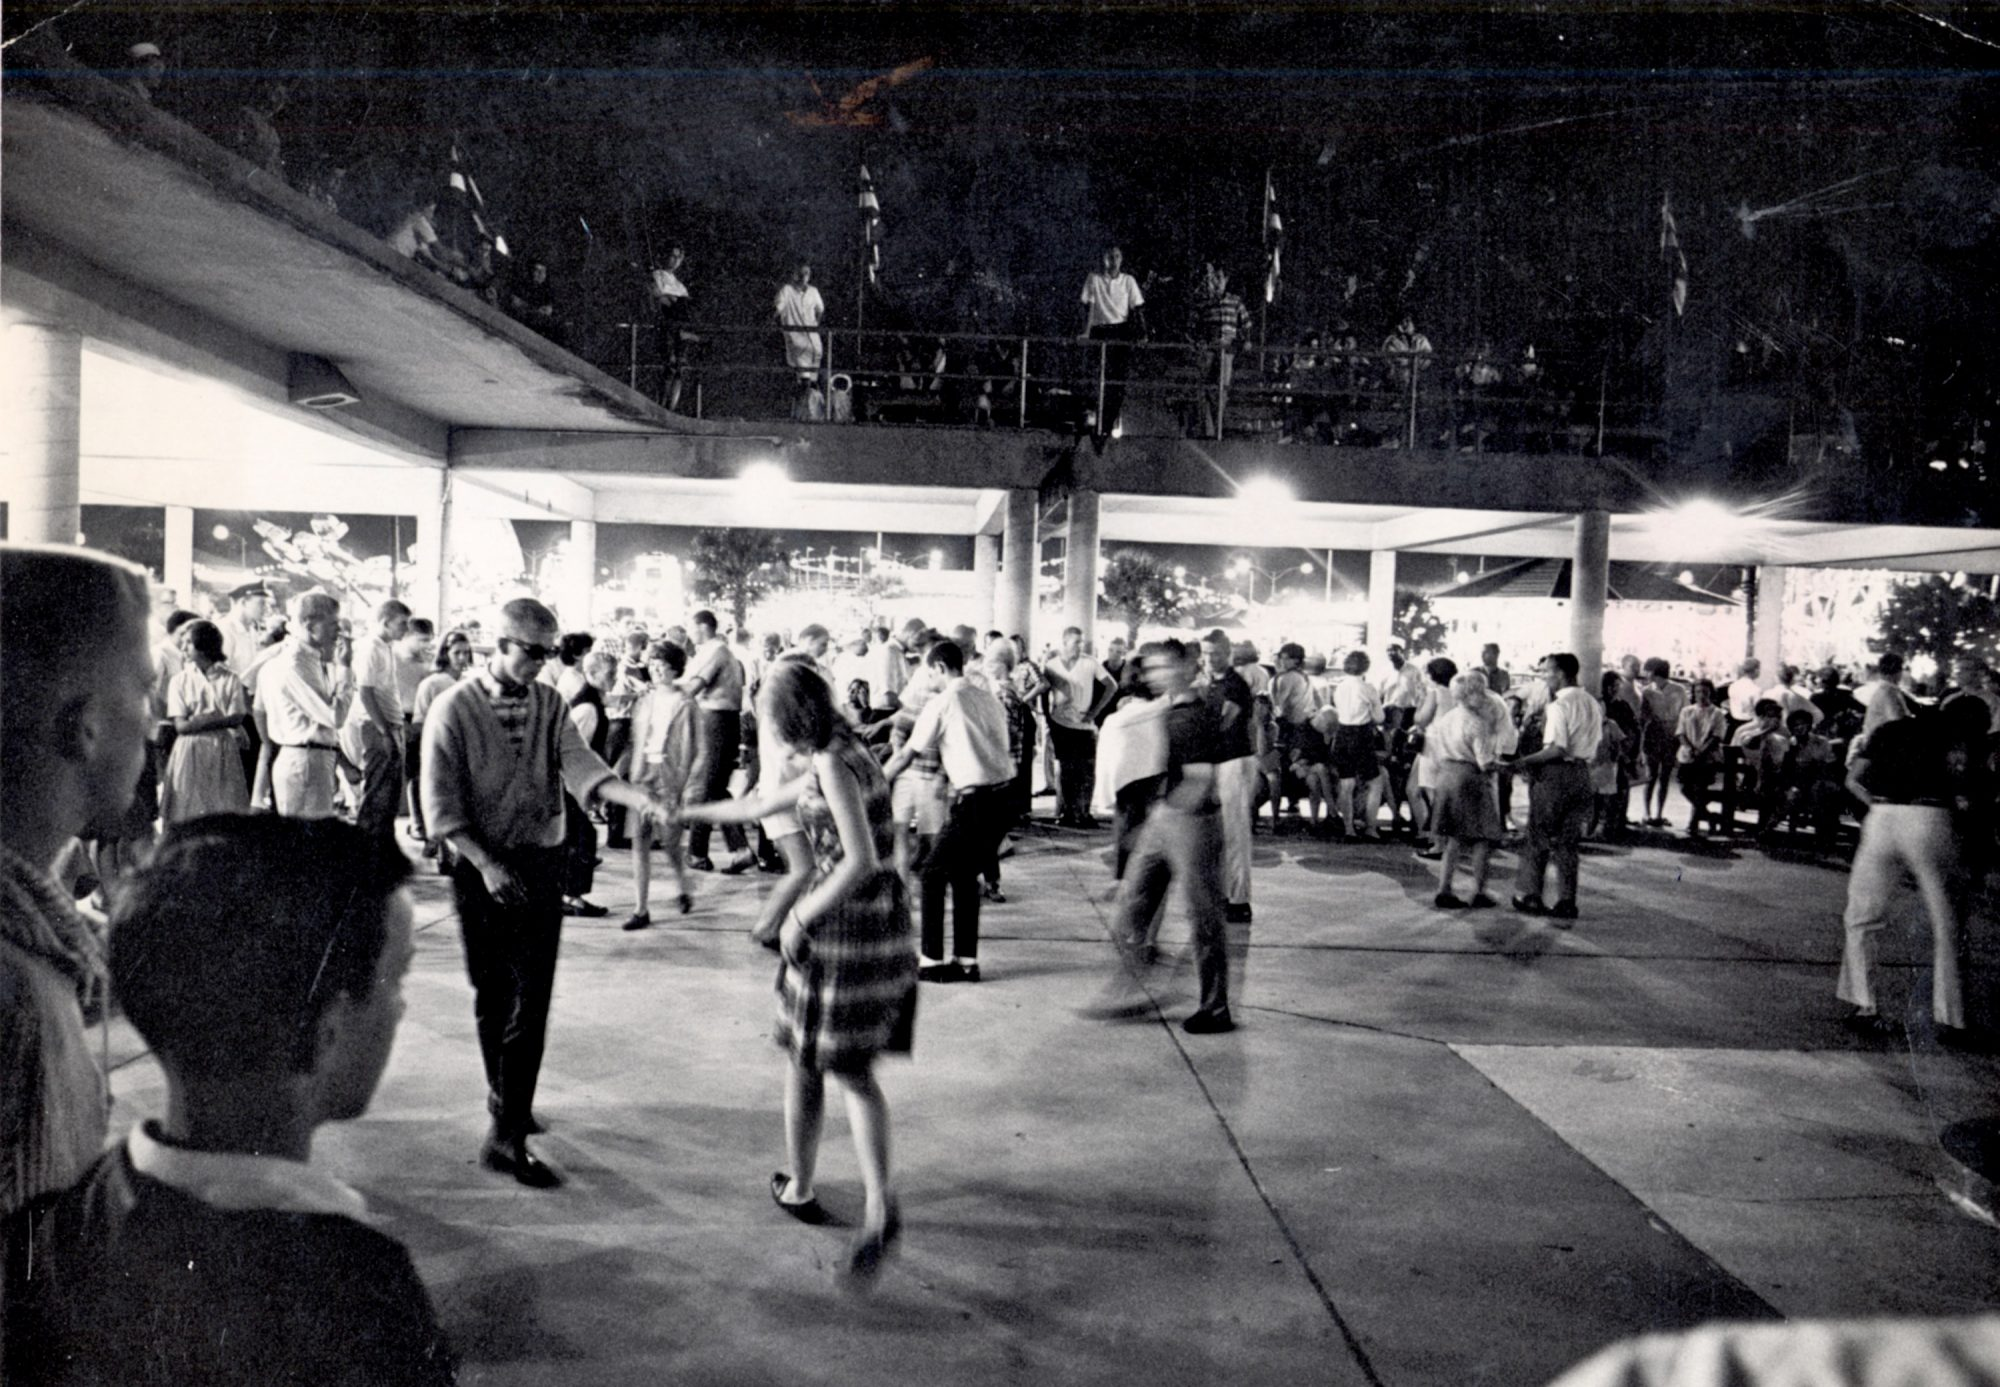 Myrtle Beach Pavillion in 1964